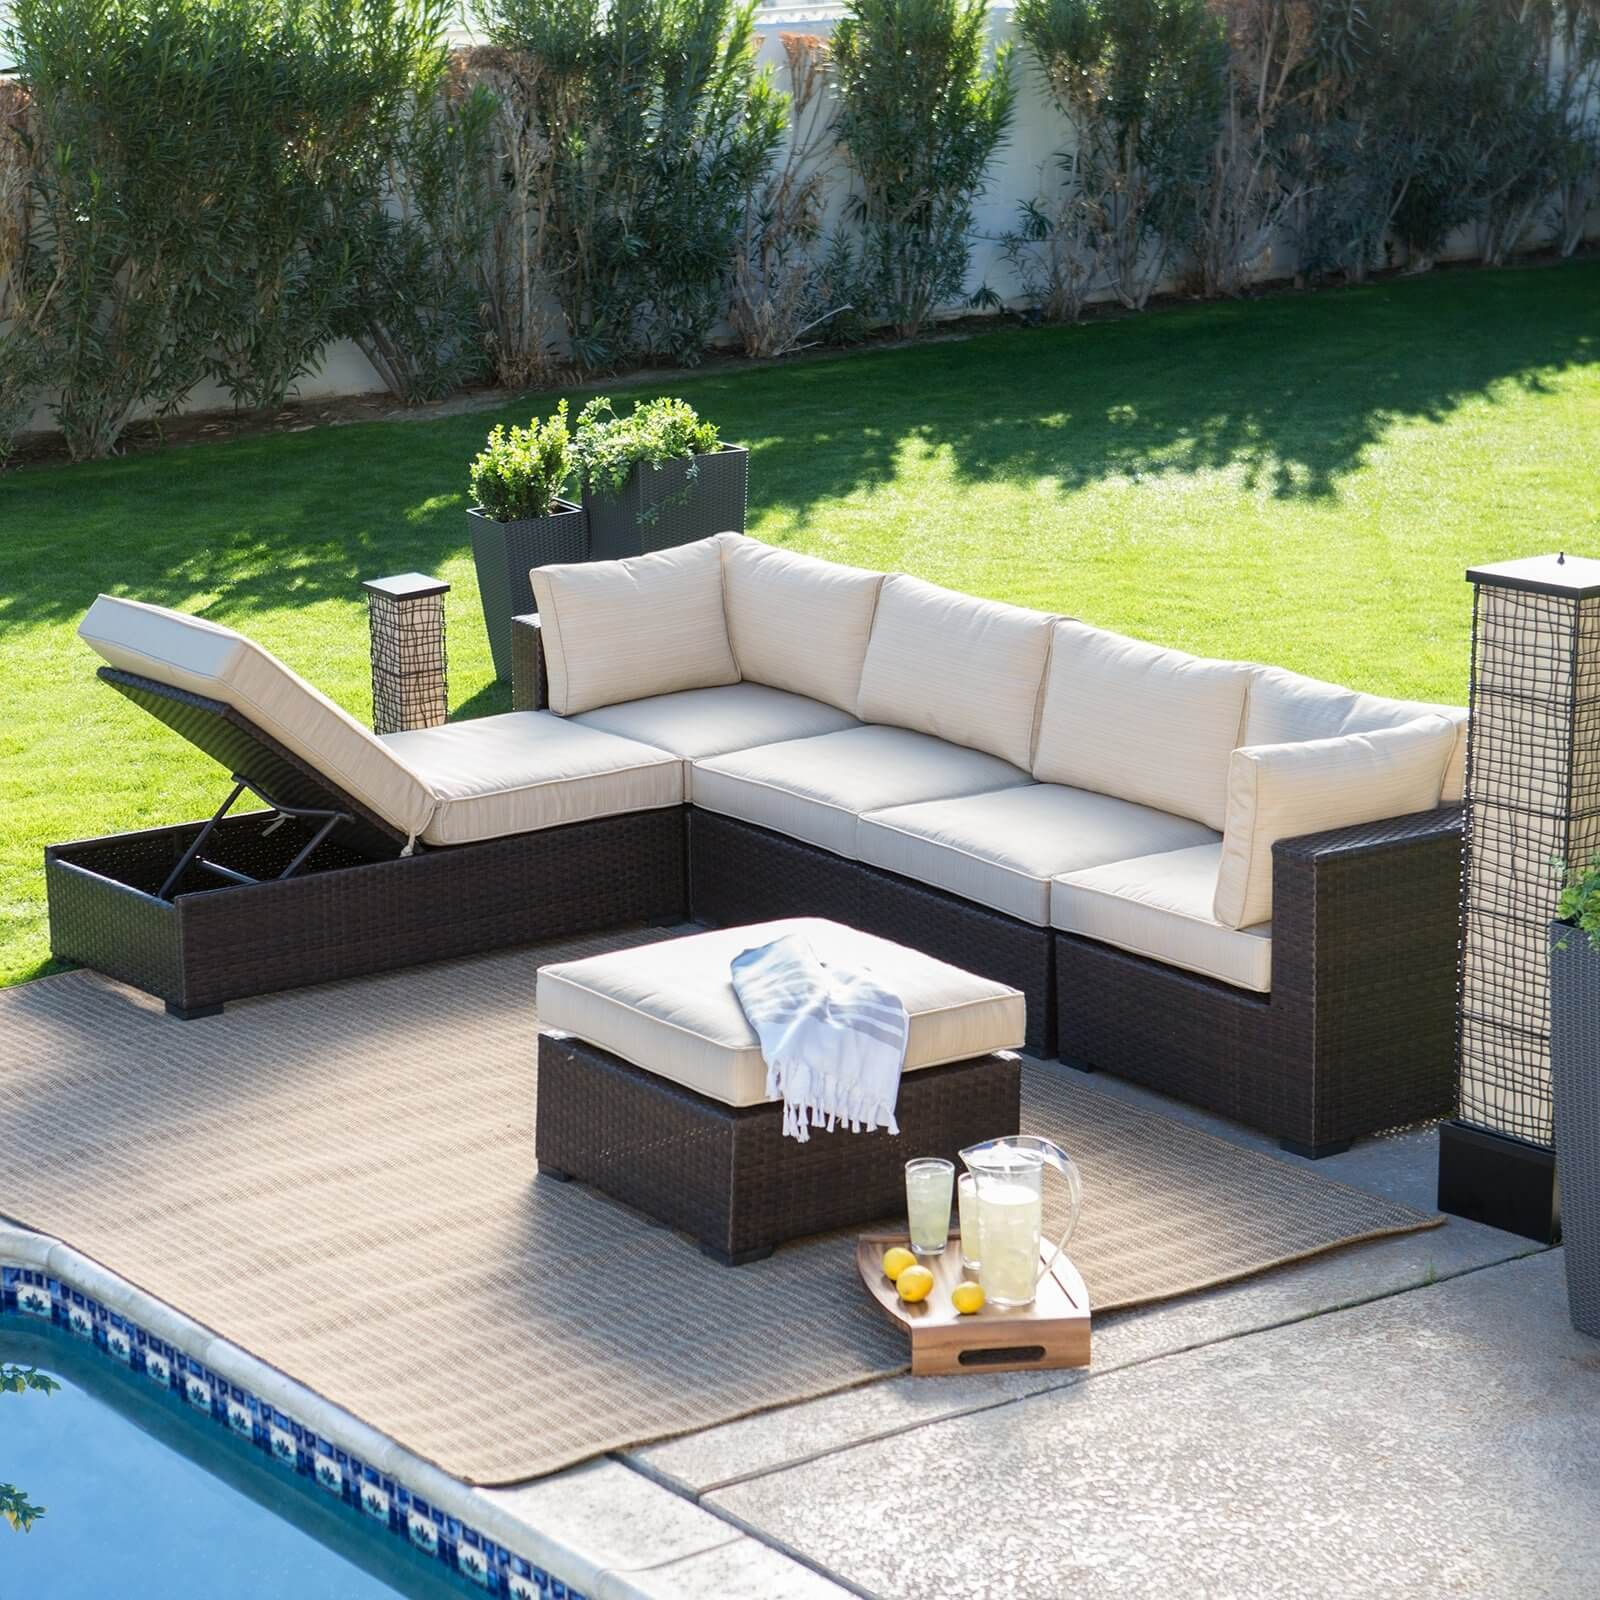 25 Awesome Modern Brown All Weather Outdoor Patio